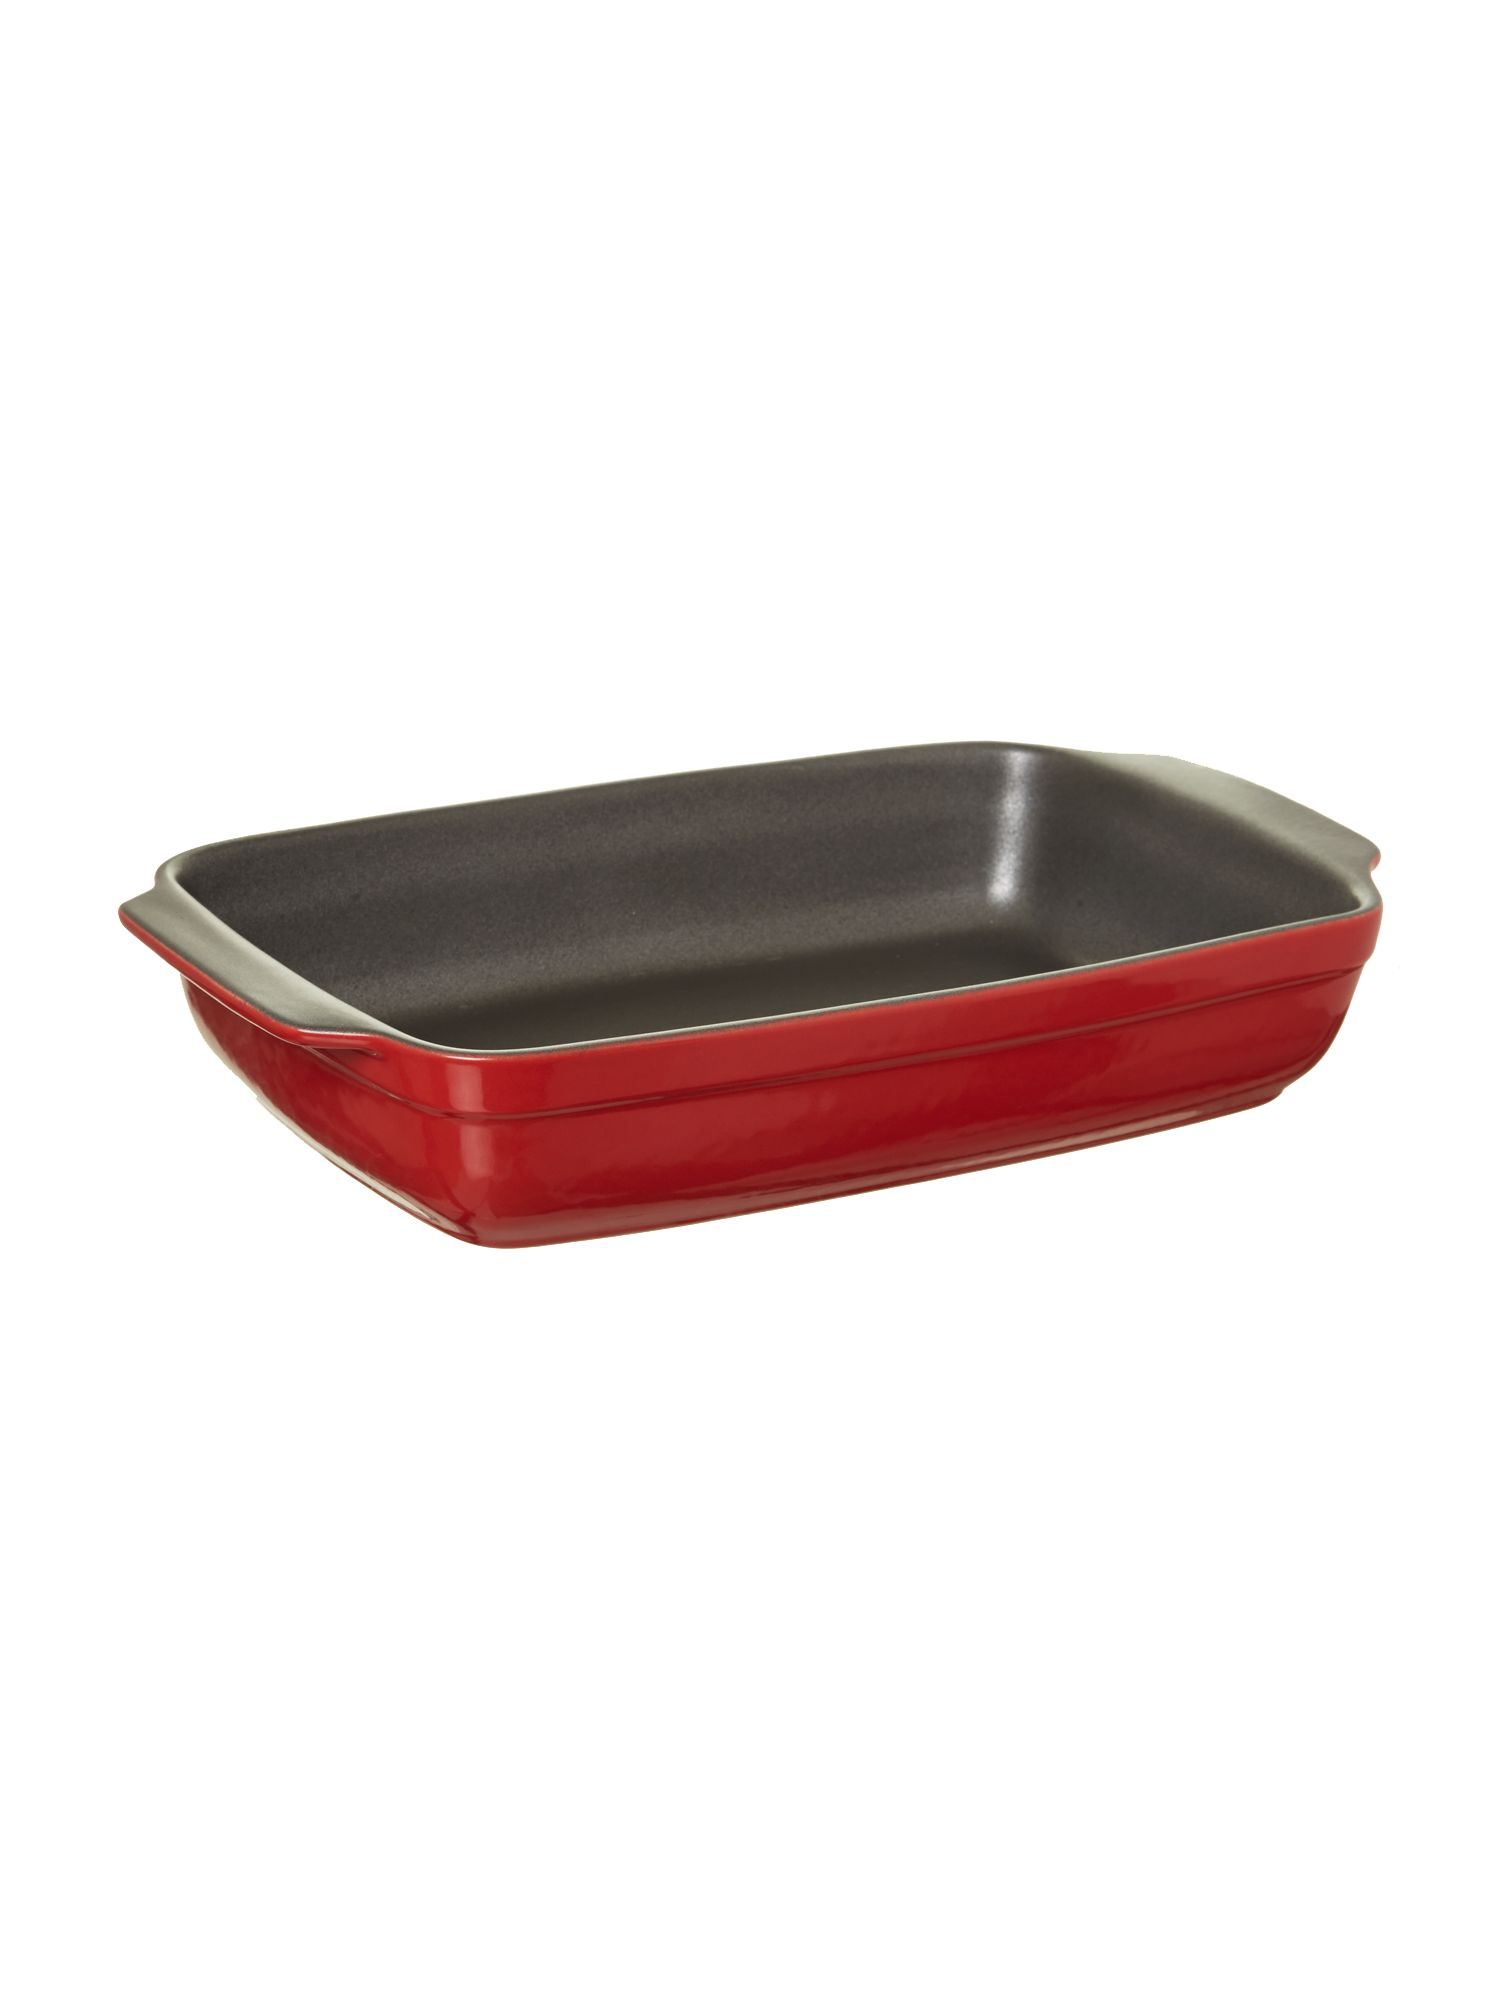 Non-stick rectangular roaster 30cm, red